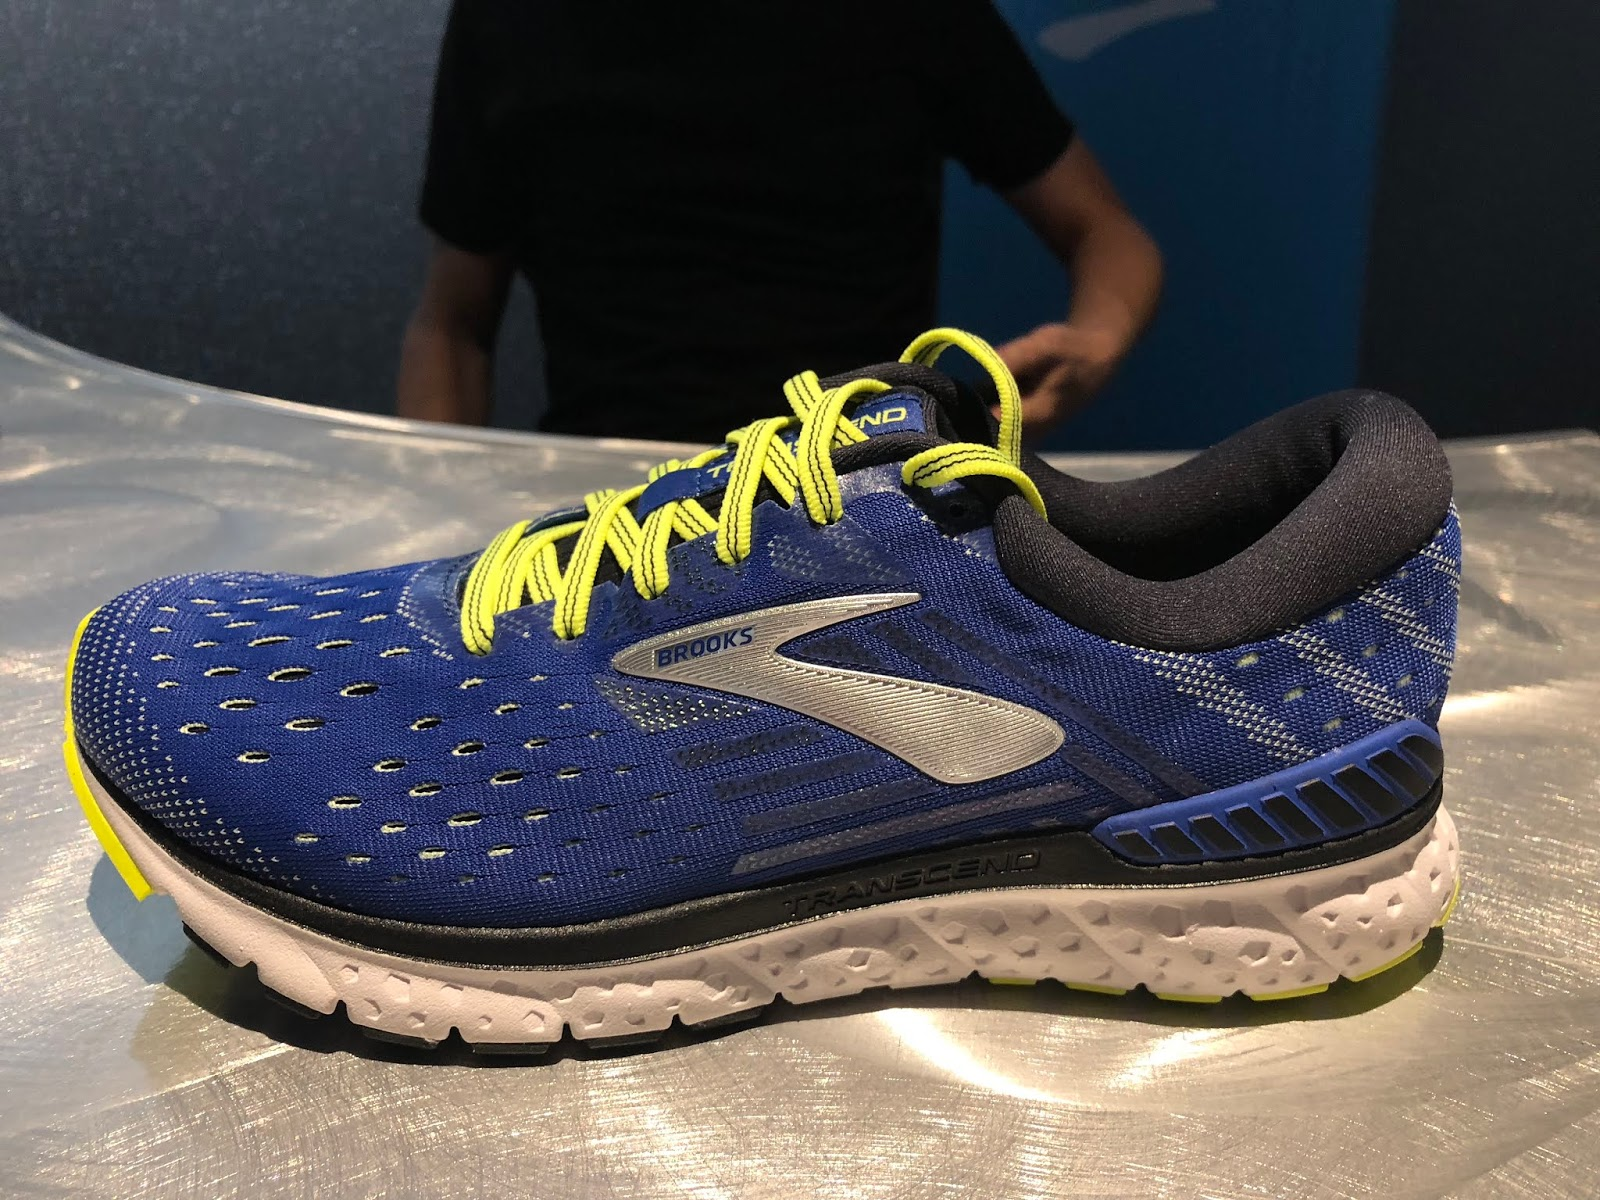 2b3a9d31b7059 Joining the Glycerin the Transcend 6 gets a full length DNA Loft midsole so  we expect a yet softer and livelier ride with near neutral shoe  characteristics ...